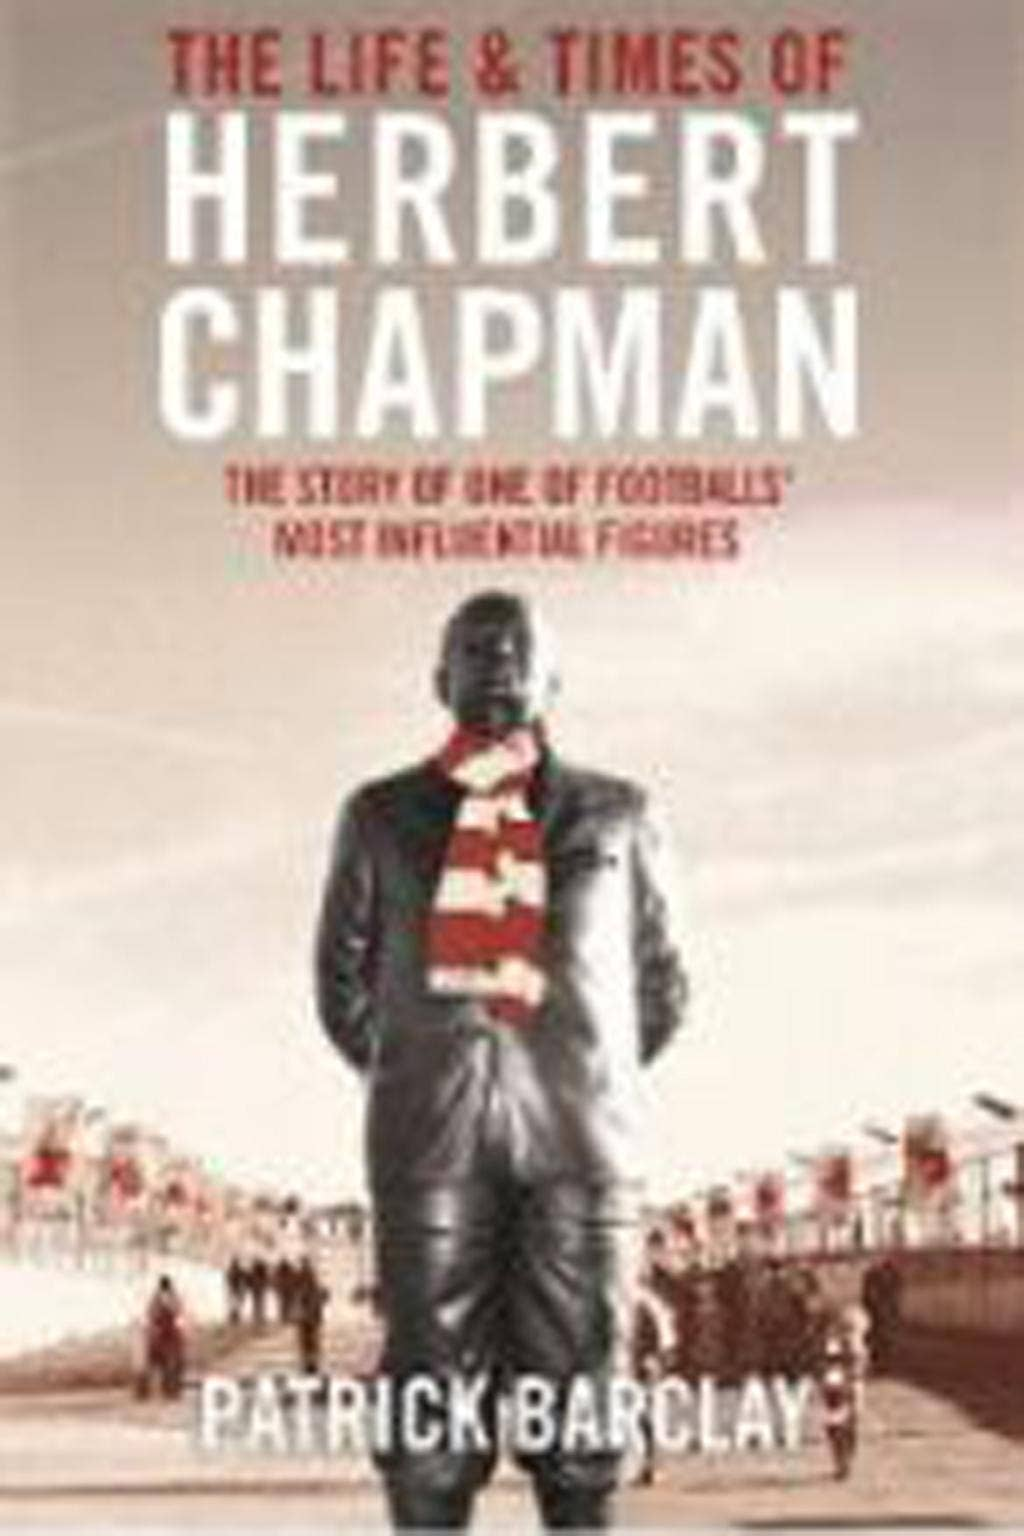 The Life and Times of Herbert Chapman by Patrick Barclay